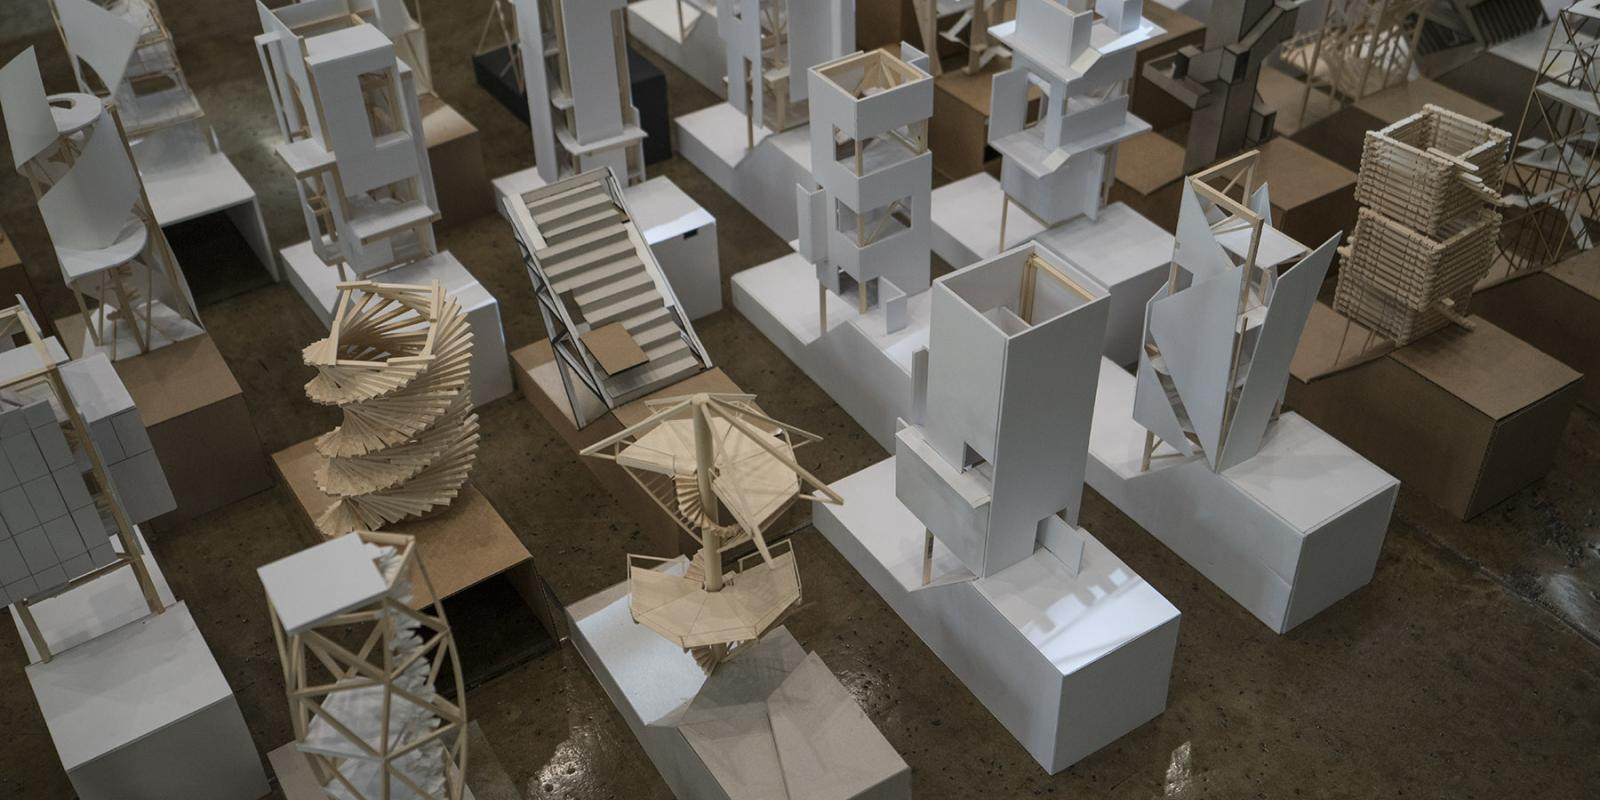 Models from the Tectonics Studio (ARC 301 and ARC 504), Building 7 Atrium (George Proctor)